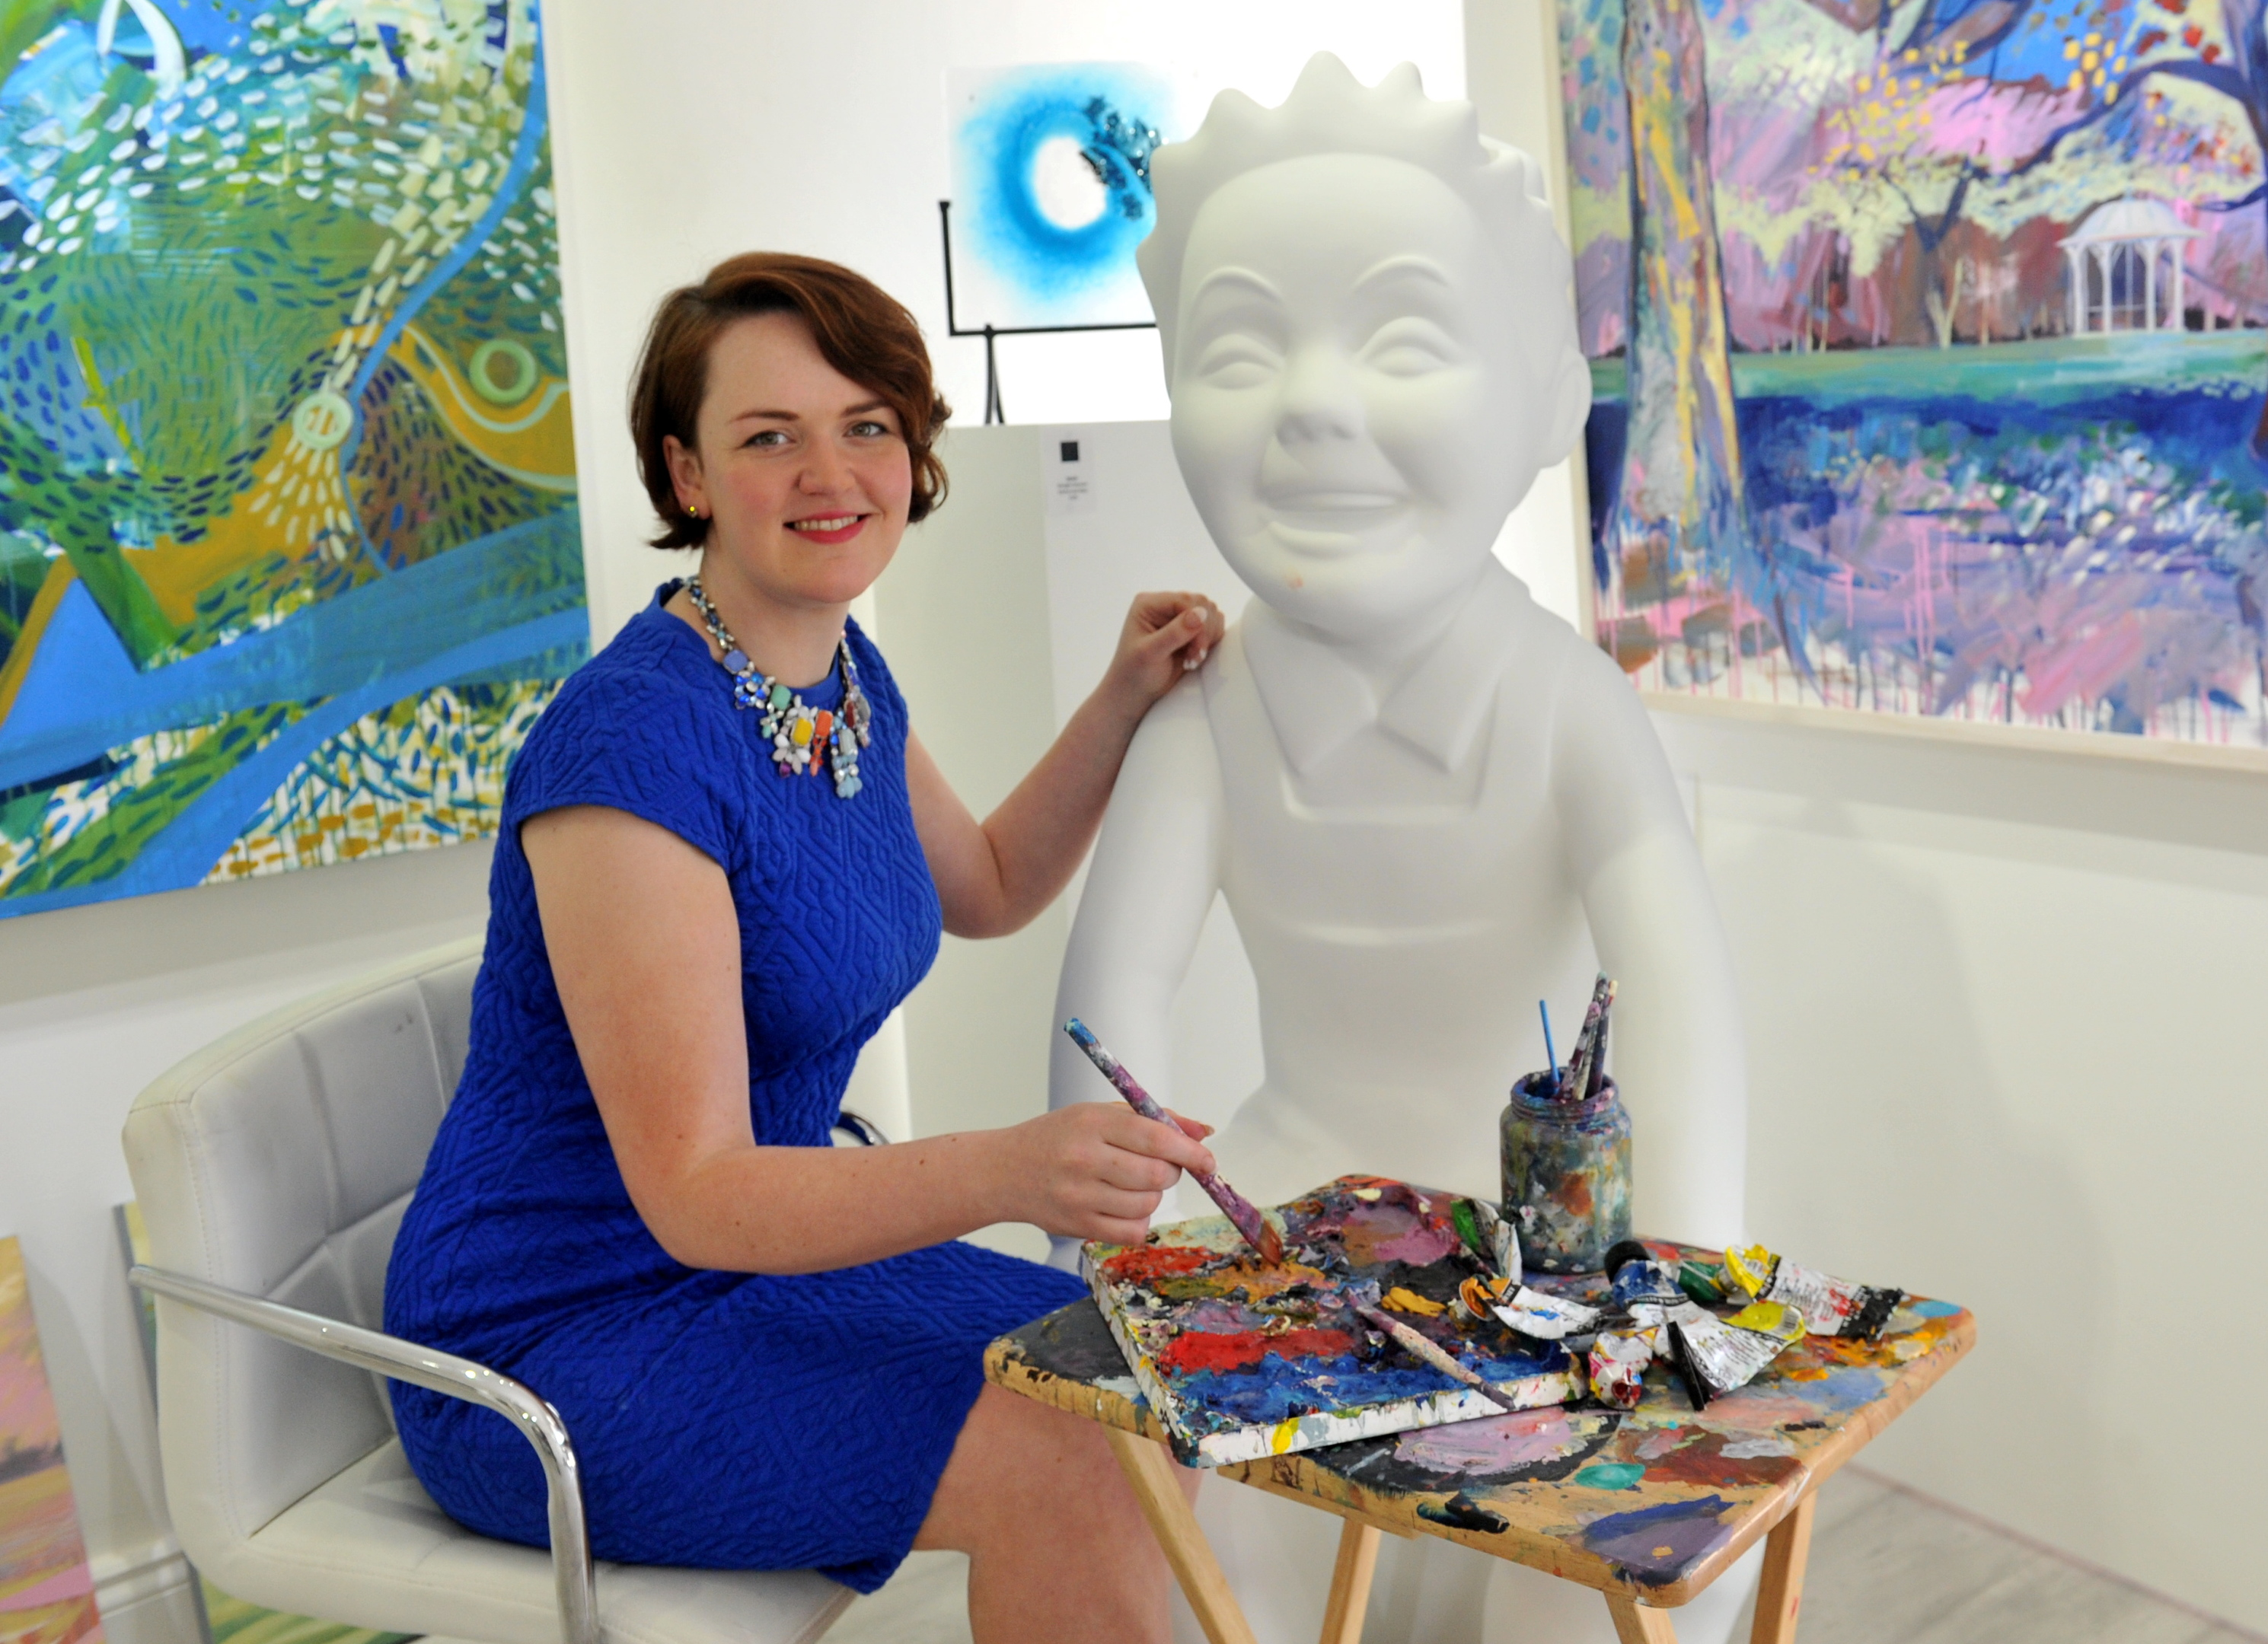 Artist Shelagh Swanson will decorate Oor Wullie with images of Scotland's historic buildings for the Dundee art project.